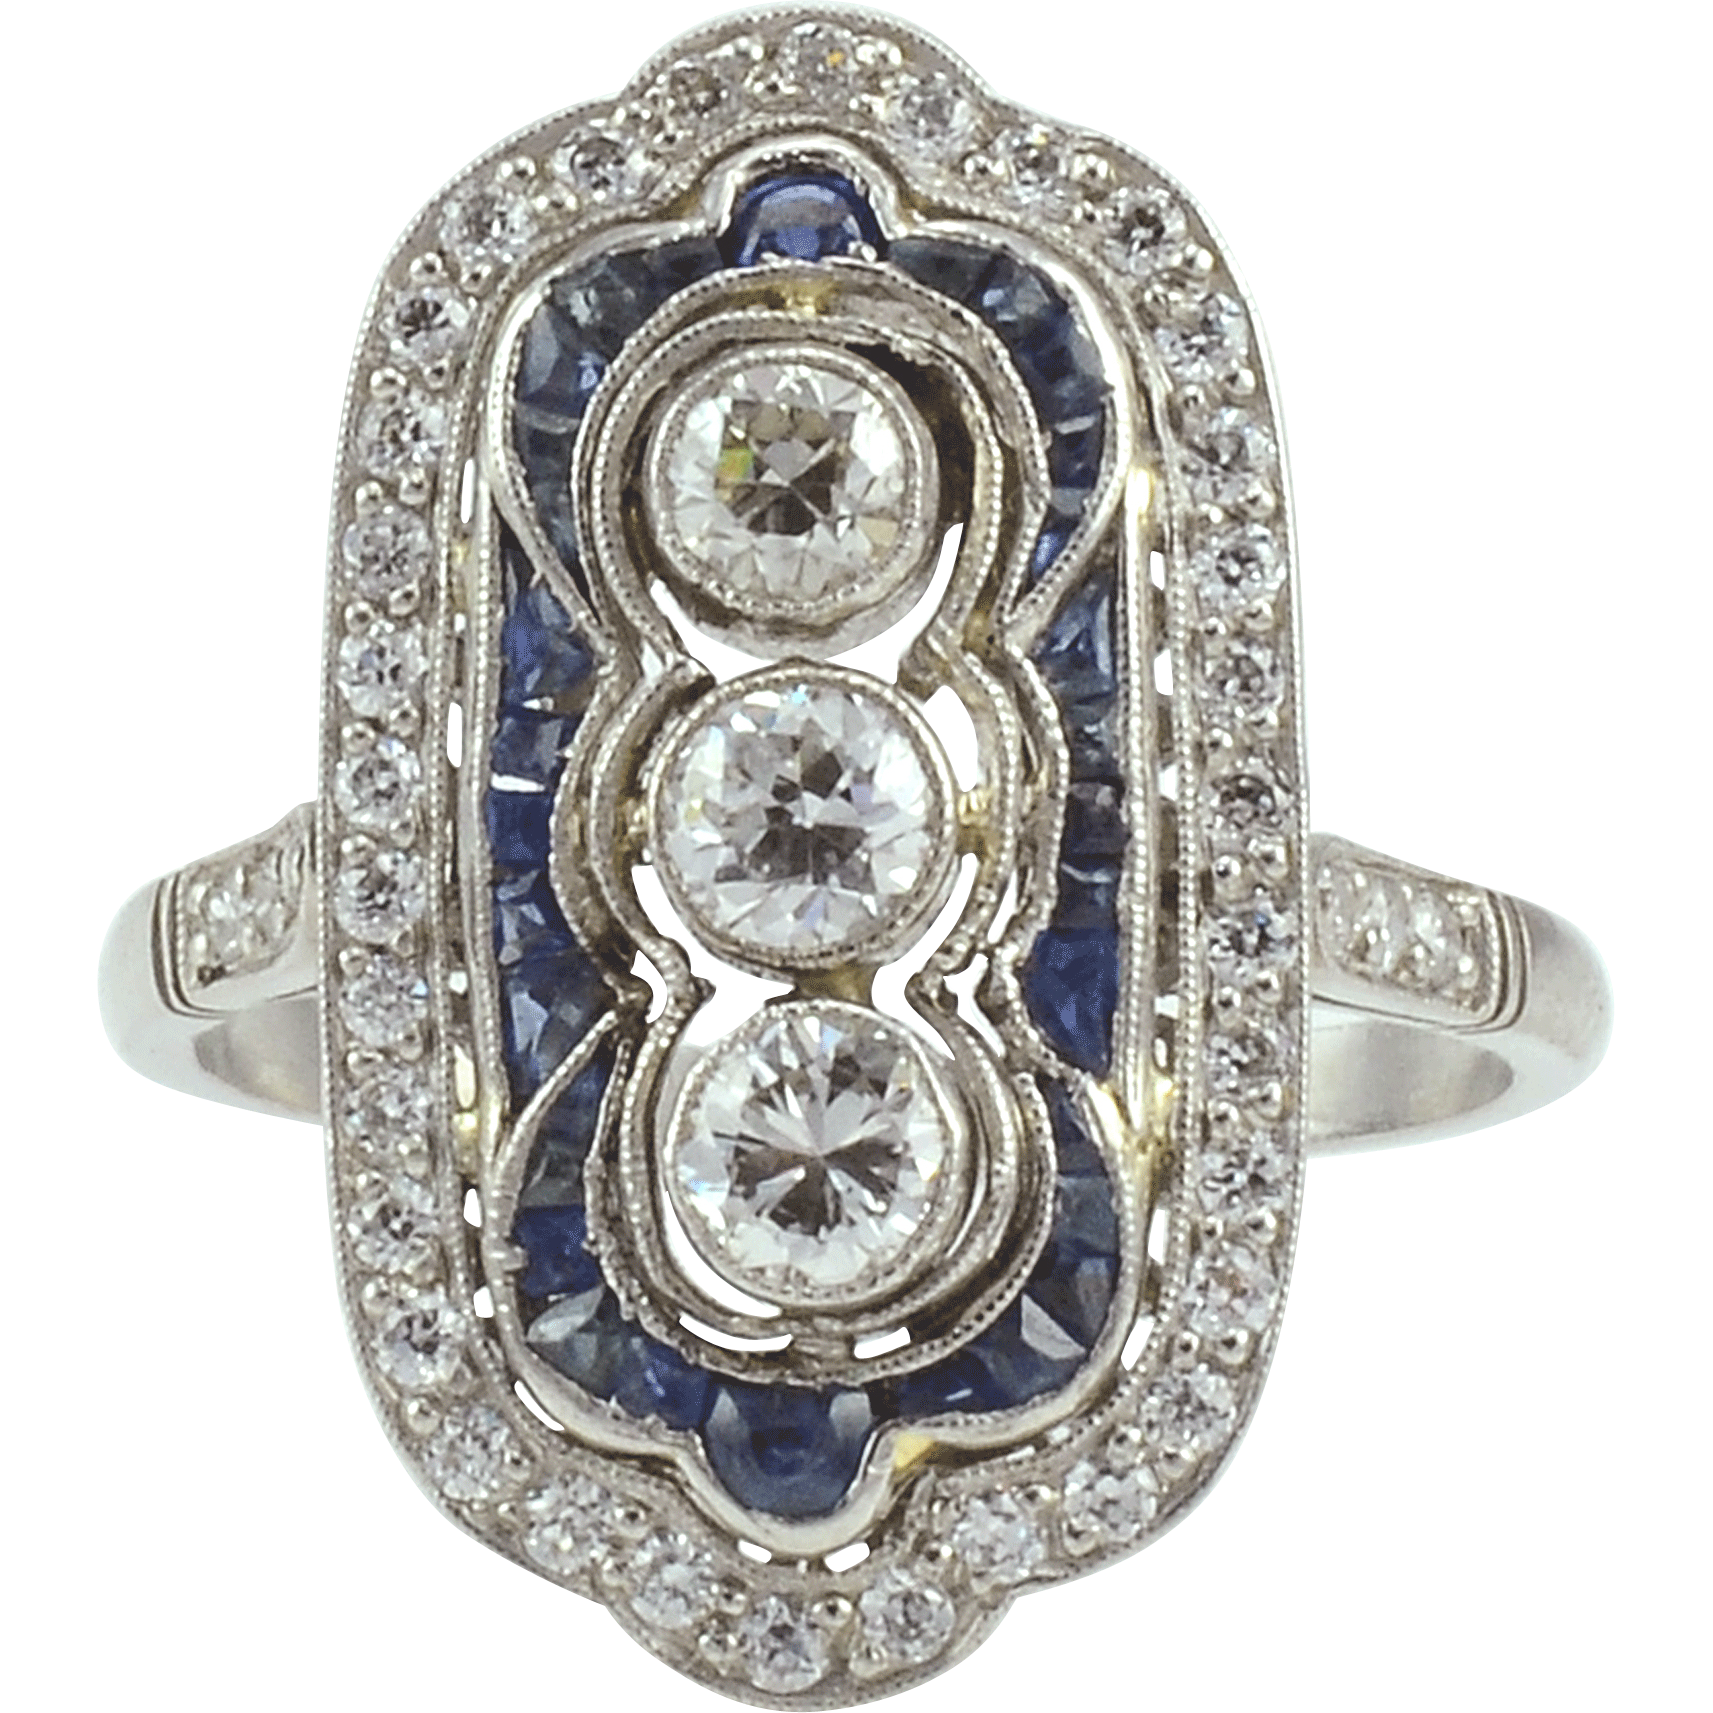 Platinum Art Deco Ring With Center Diamonds and Sapphires